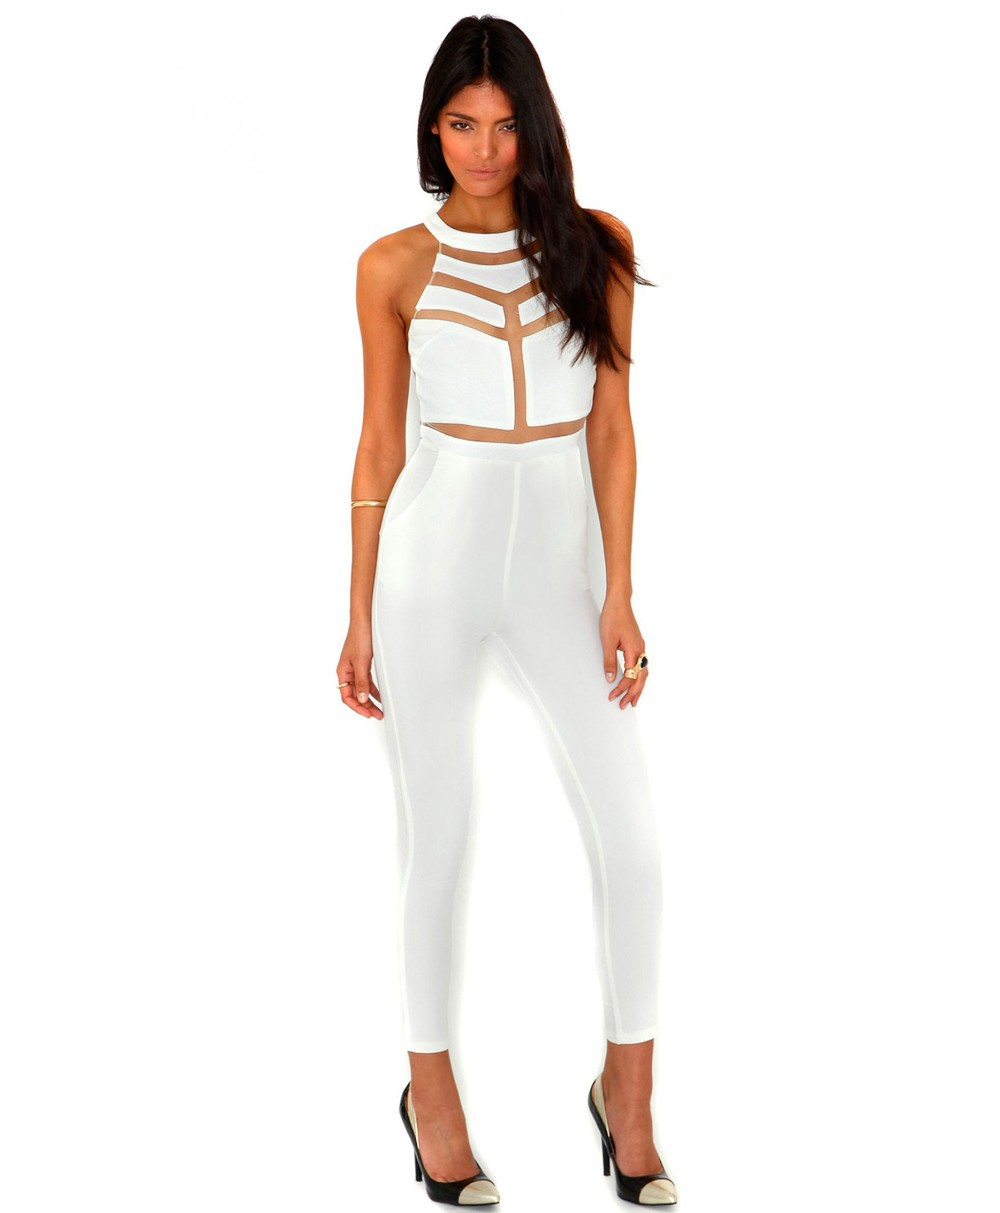 White Jumpsuits And Rompers For Women Priletaicom